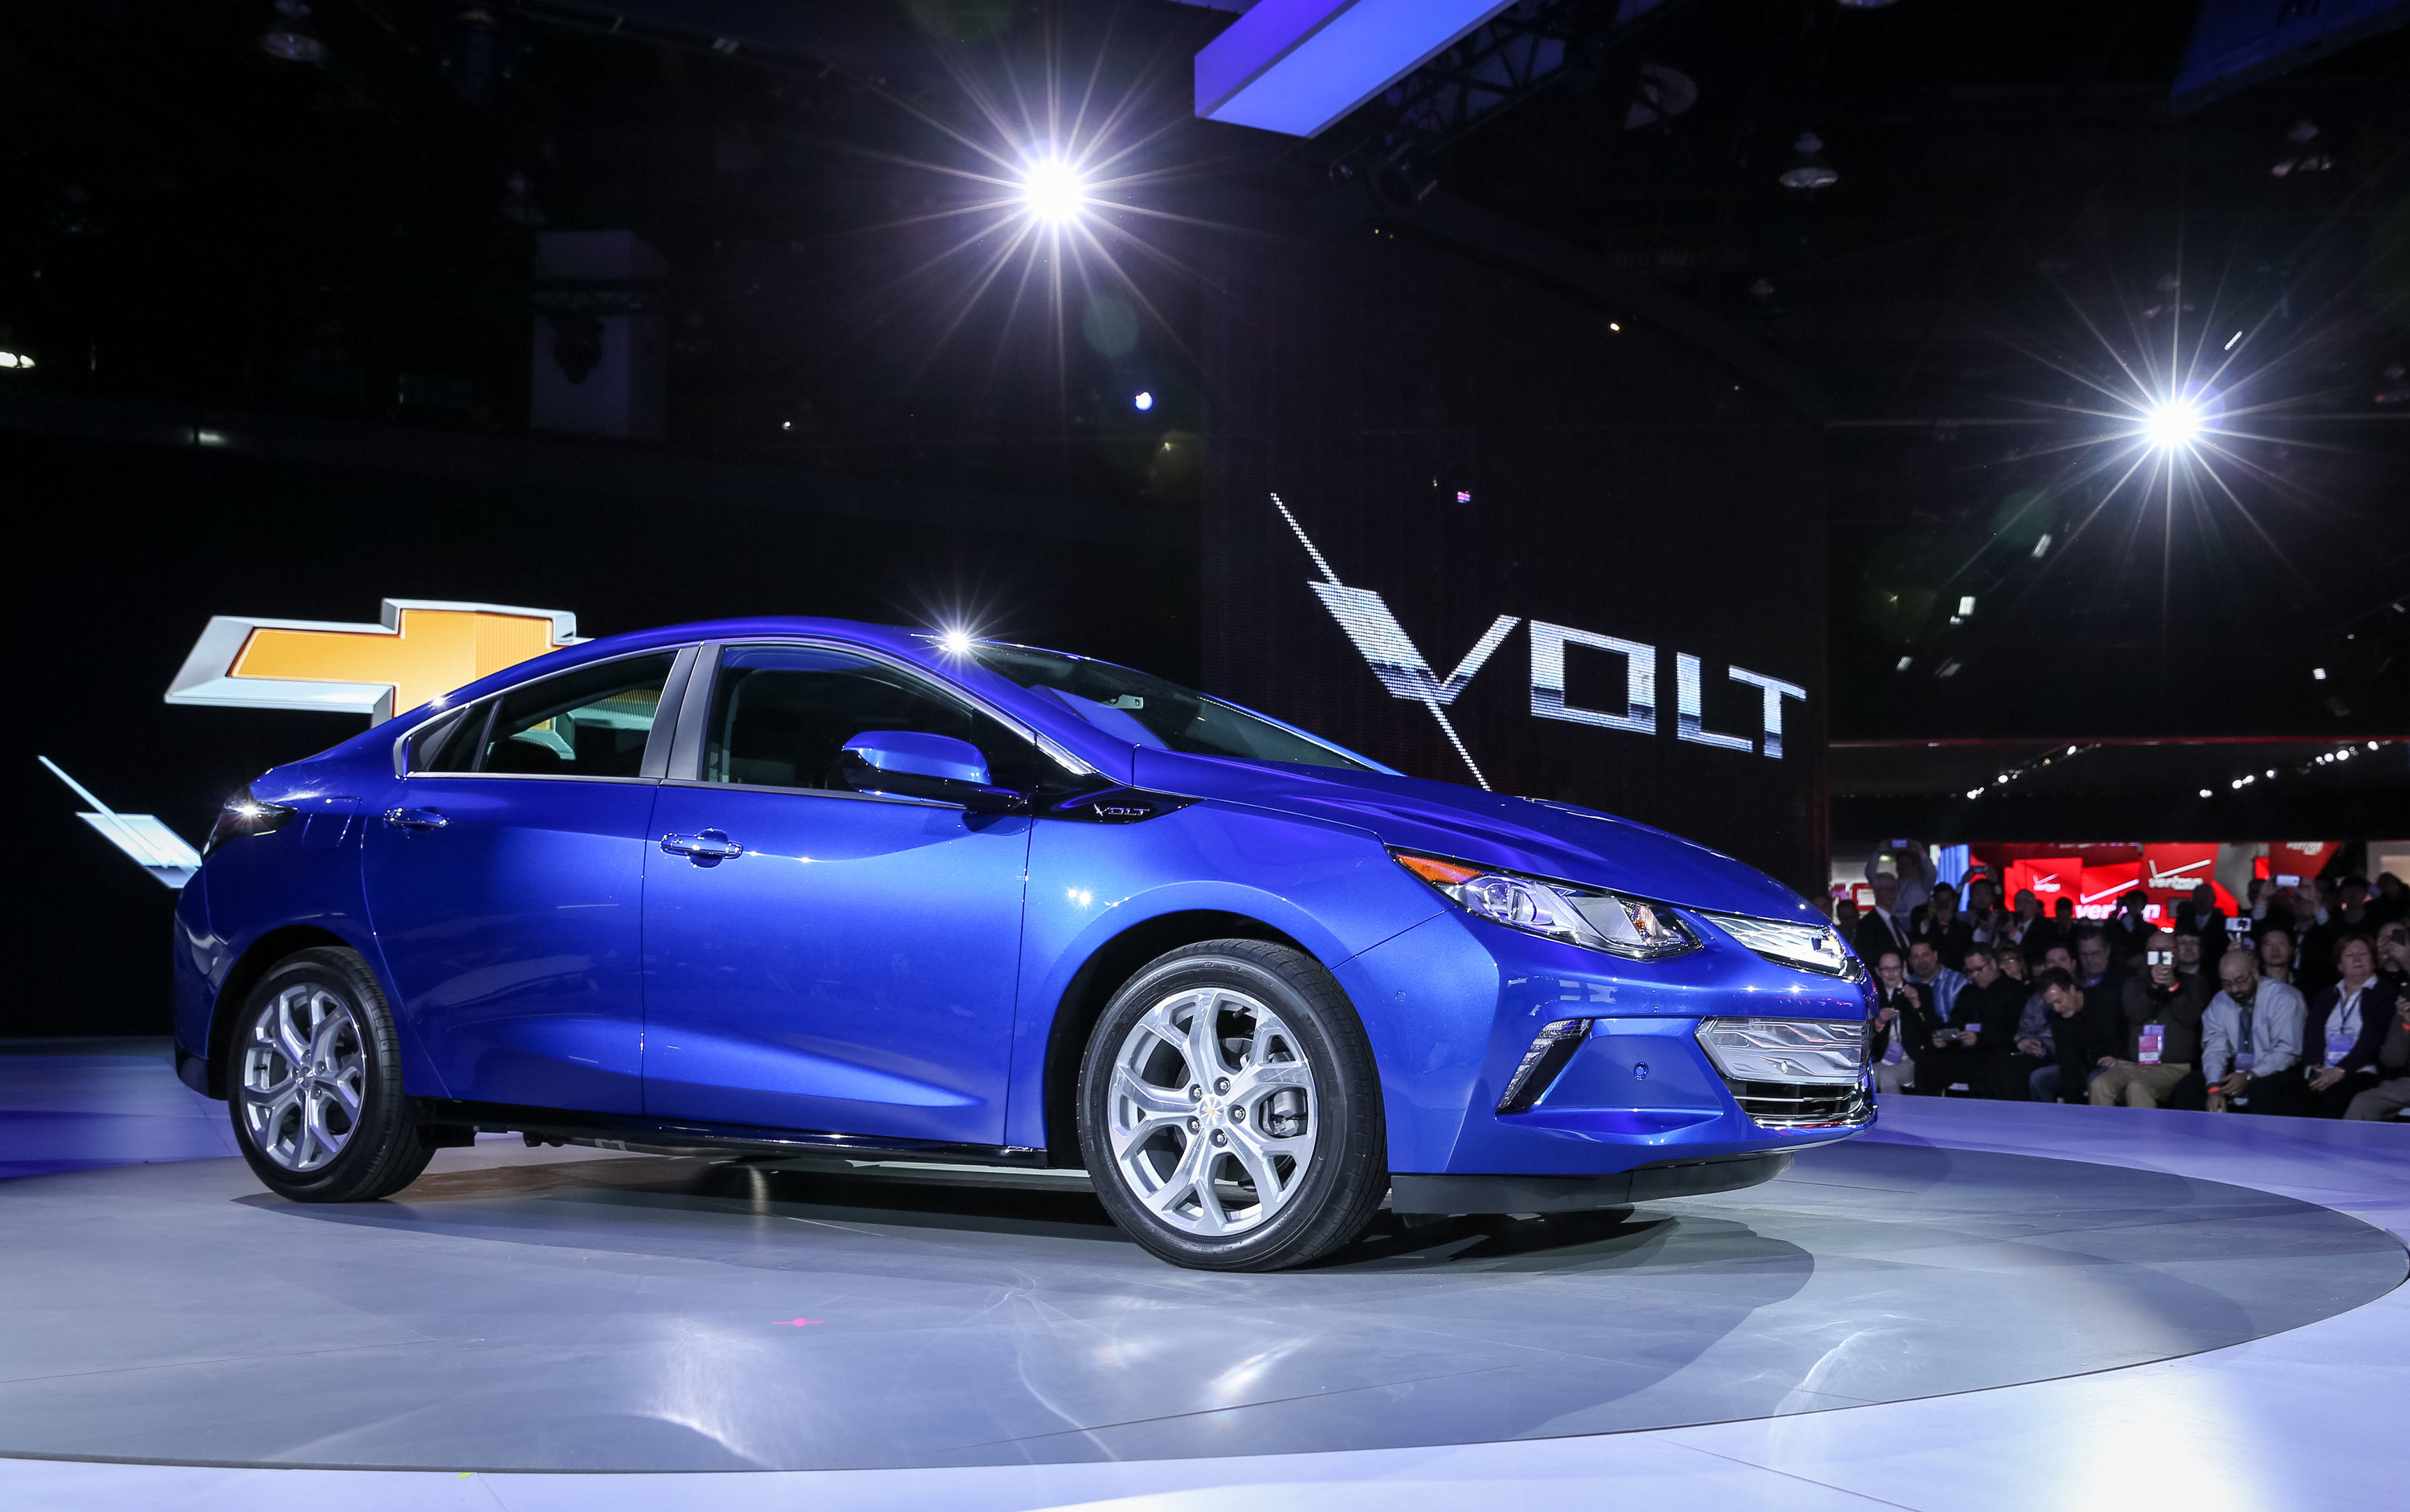 new chevy volt electric car can go 50 miles on a single battery charge big green purse. Black Bedroom Furniture Sets. Home Design Ideas